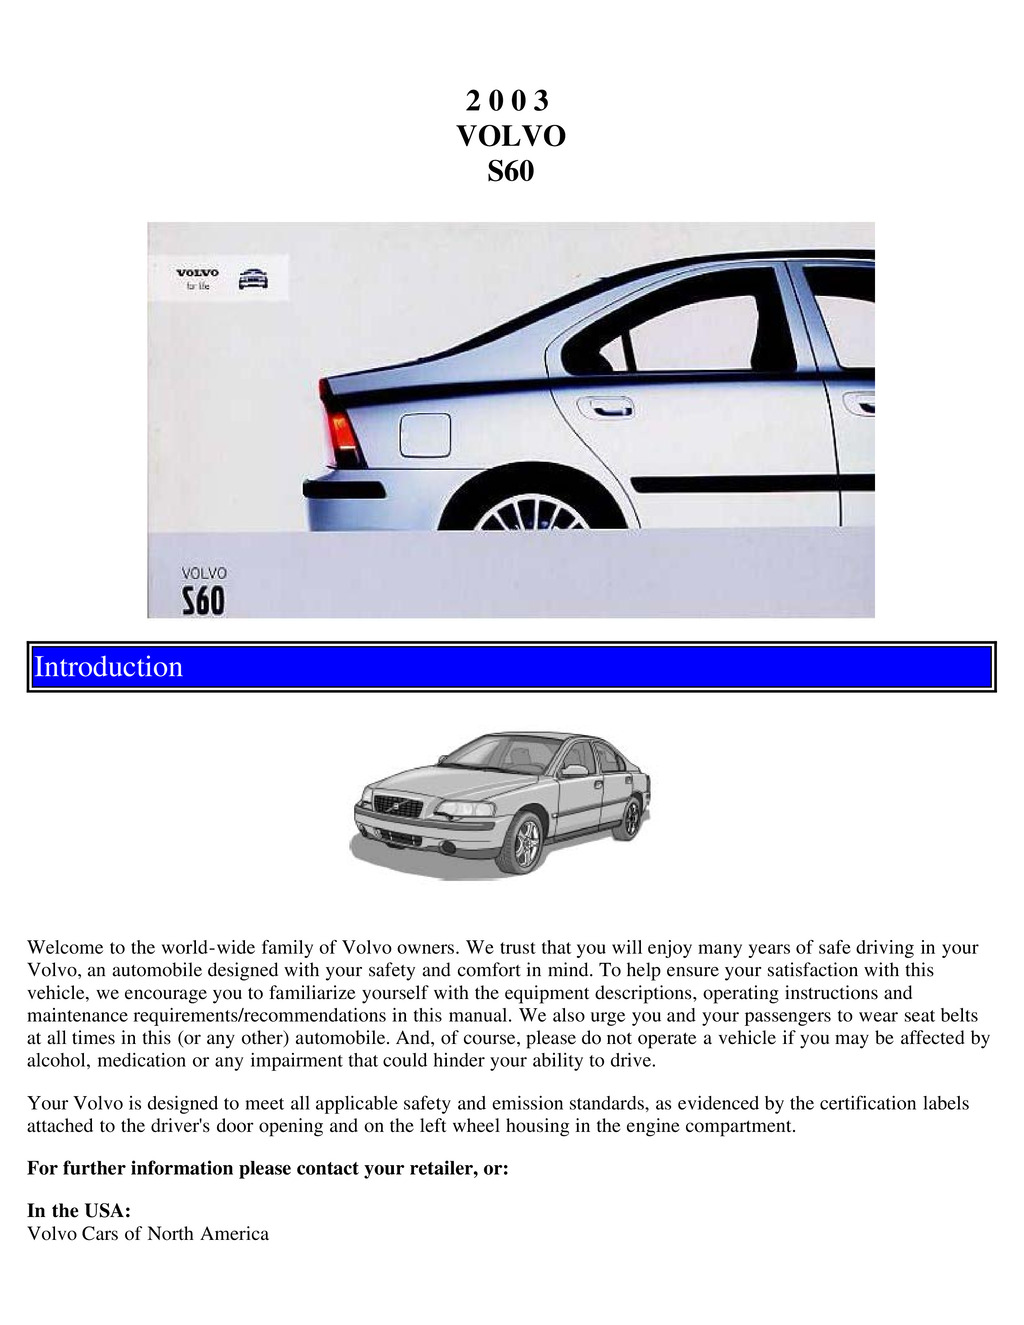 2003 Volvo S60 owners manual